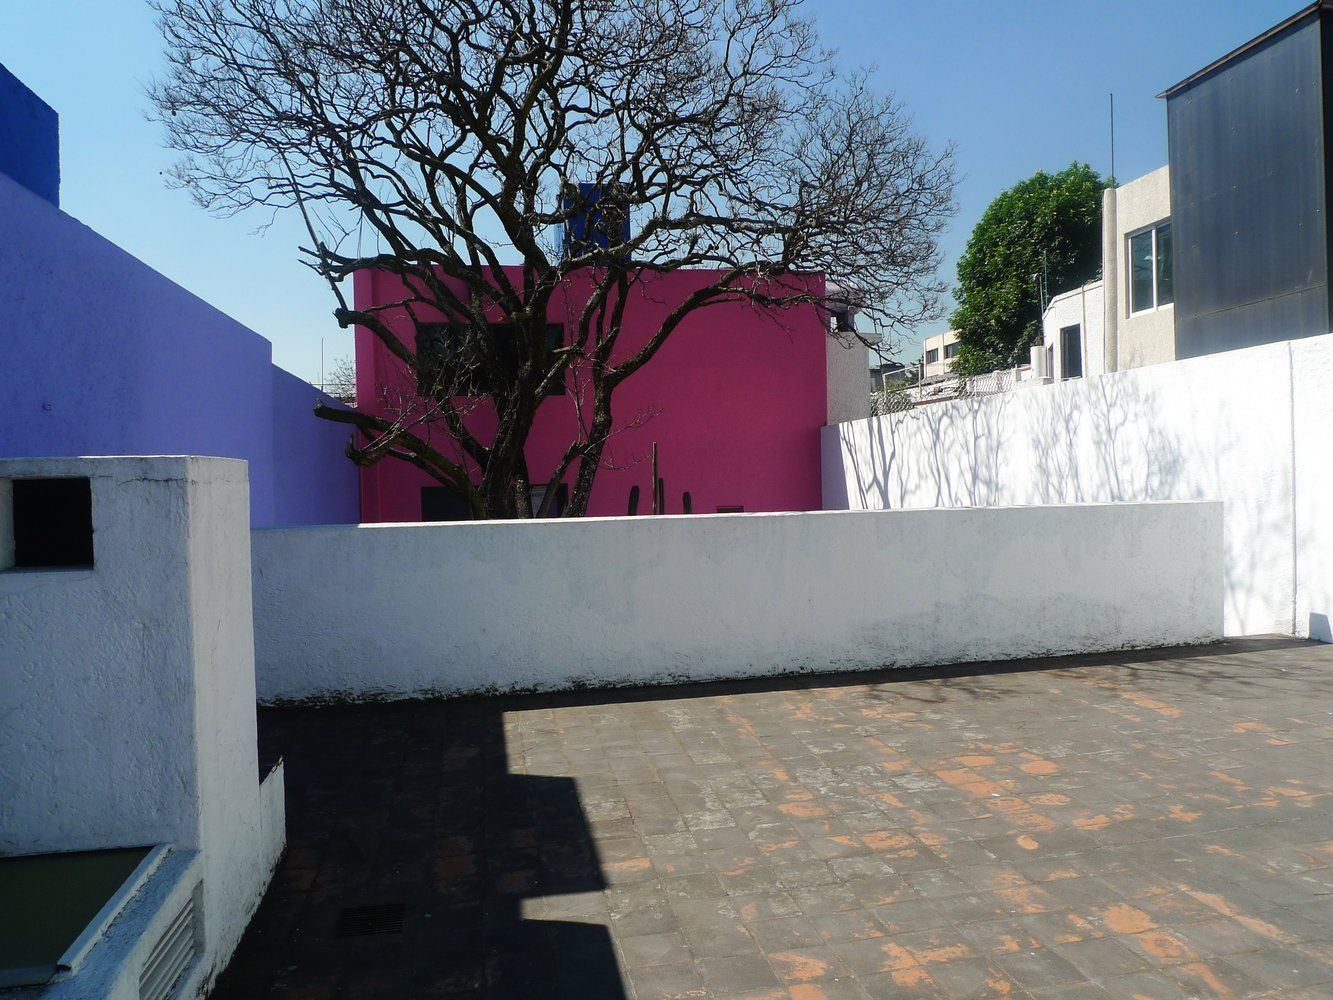 Clásicos de Arquitectura: Casa Gilardi / Luis Barragán,Usuario de Flickr: pov steve. Used under <a href='https://creativecommons.org/licenses/by-sa/2.0/'>Creative Commons</a>